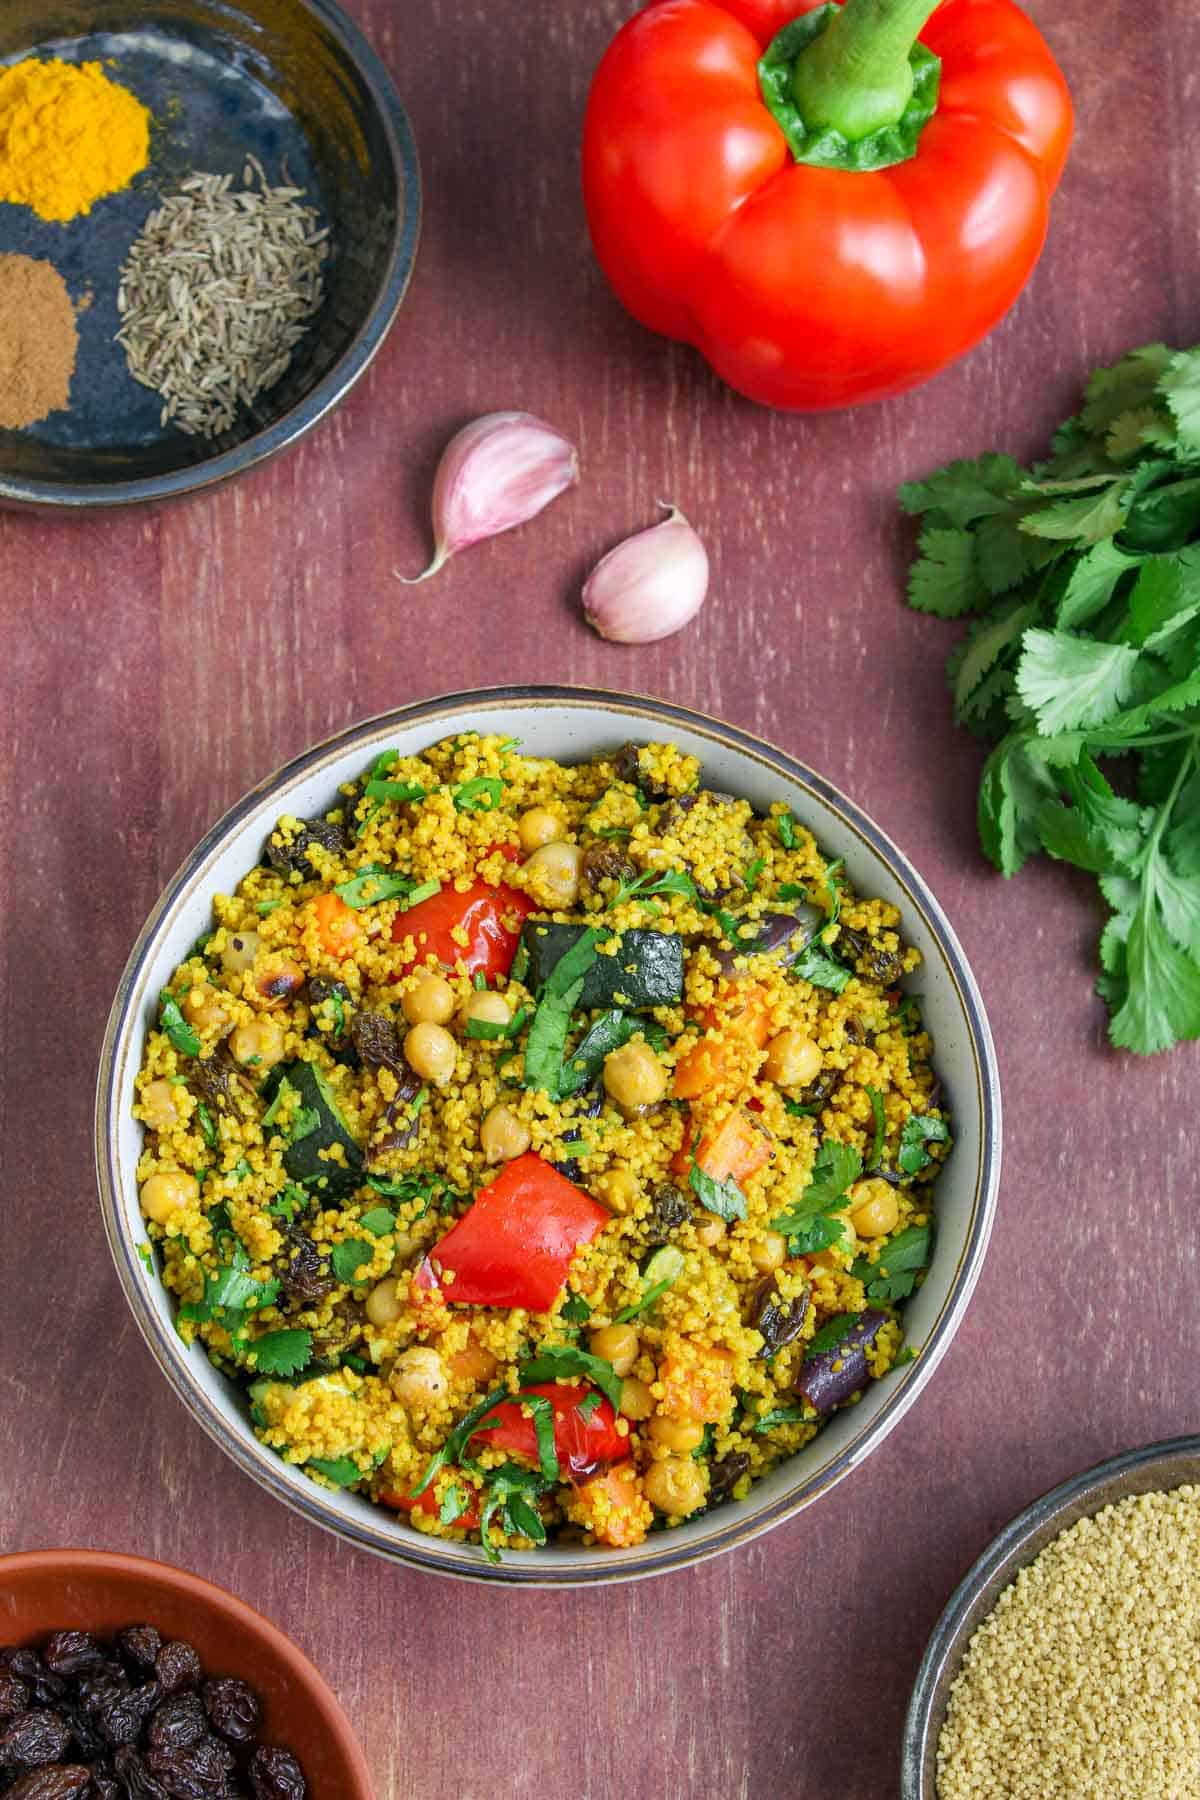 Vegan Moroccan Couscous in Bowl with Selected Ingredients